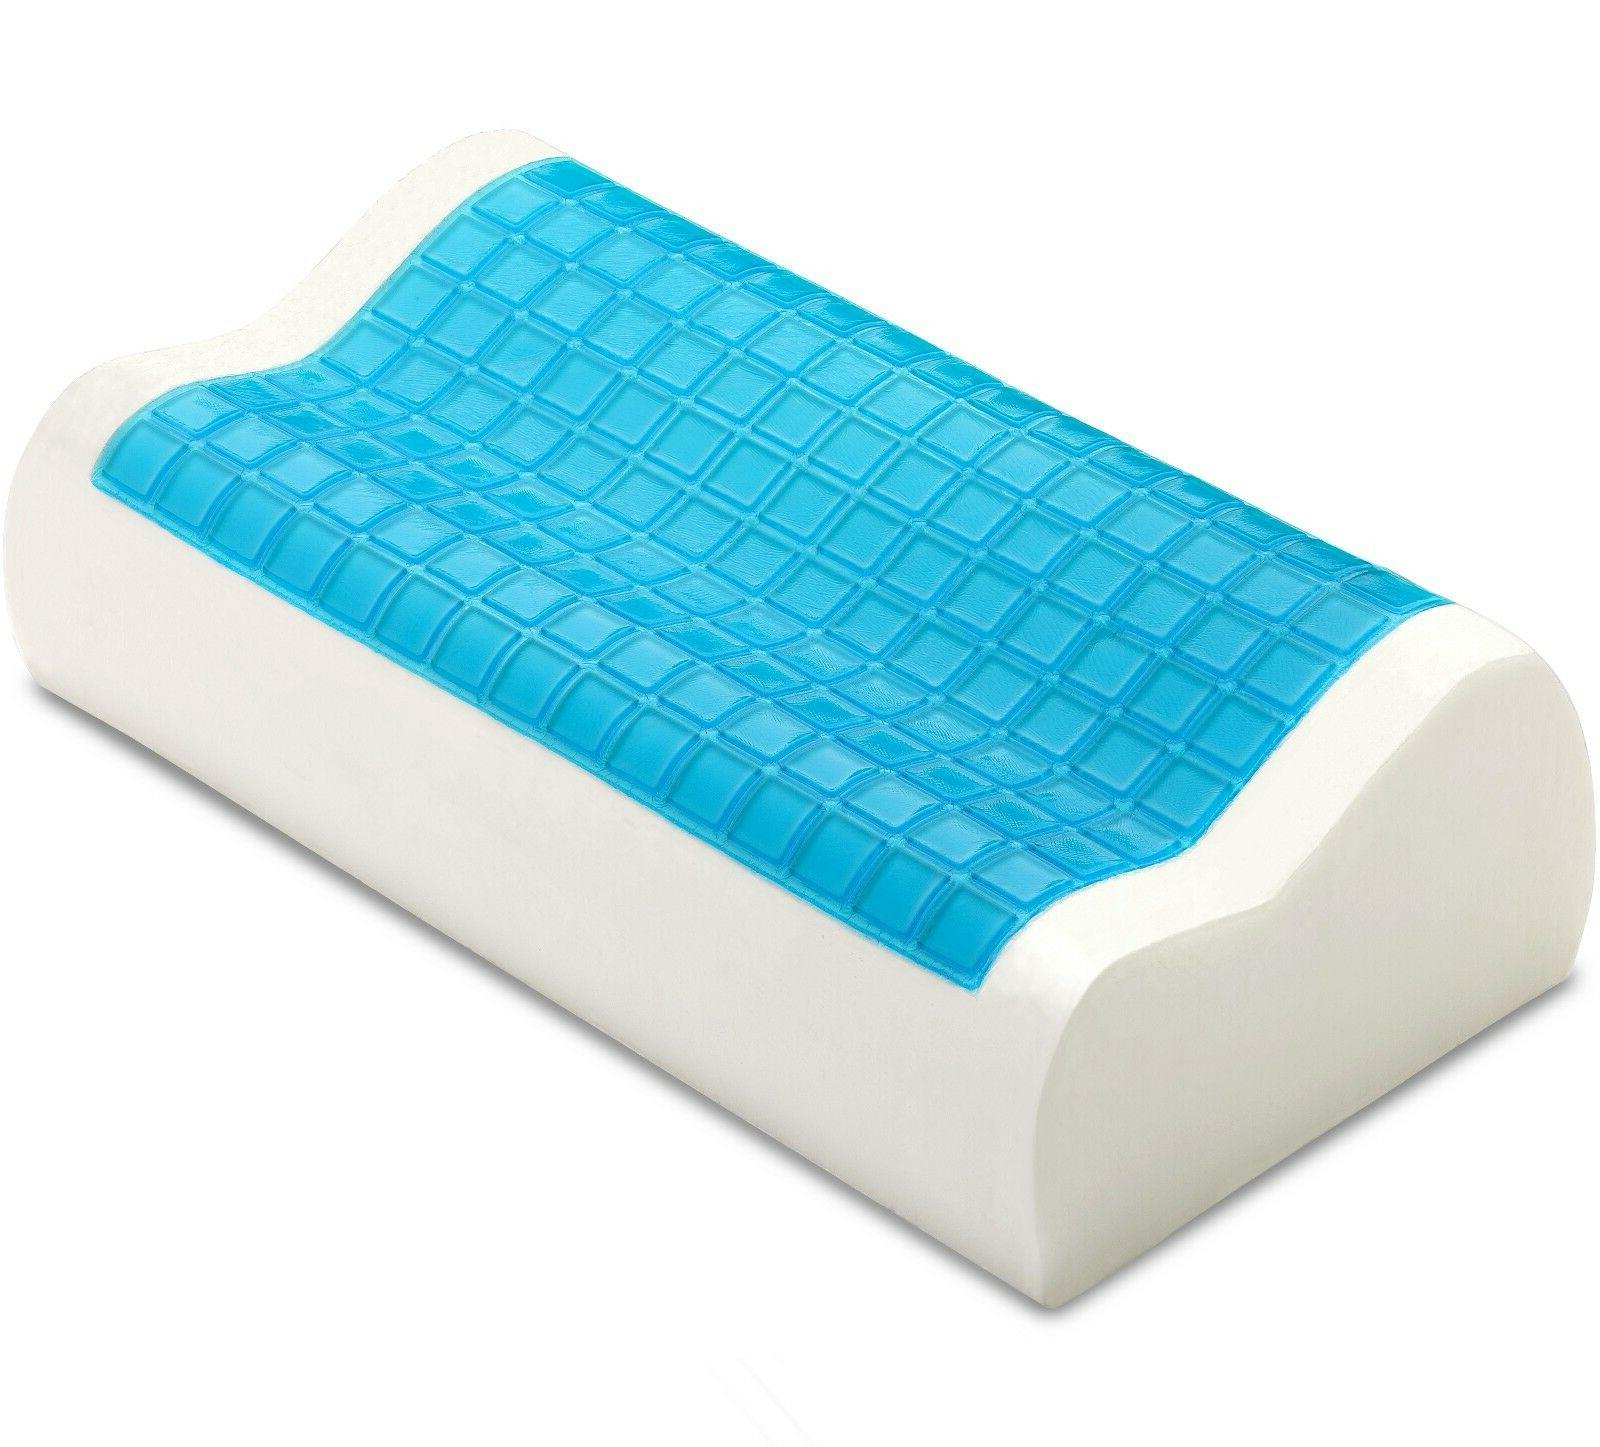 PharMeDoc Contour Memory Foam Pillow with Cooling Gel and Re